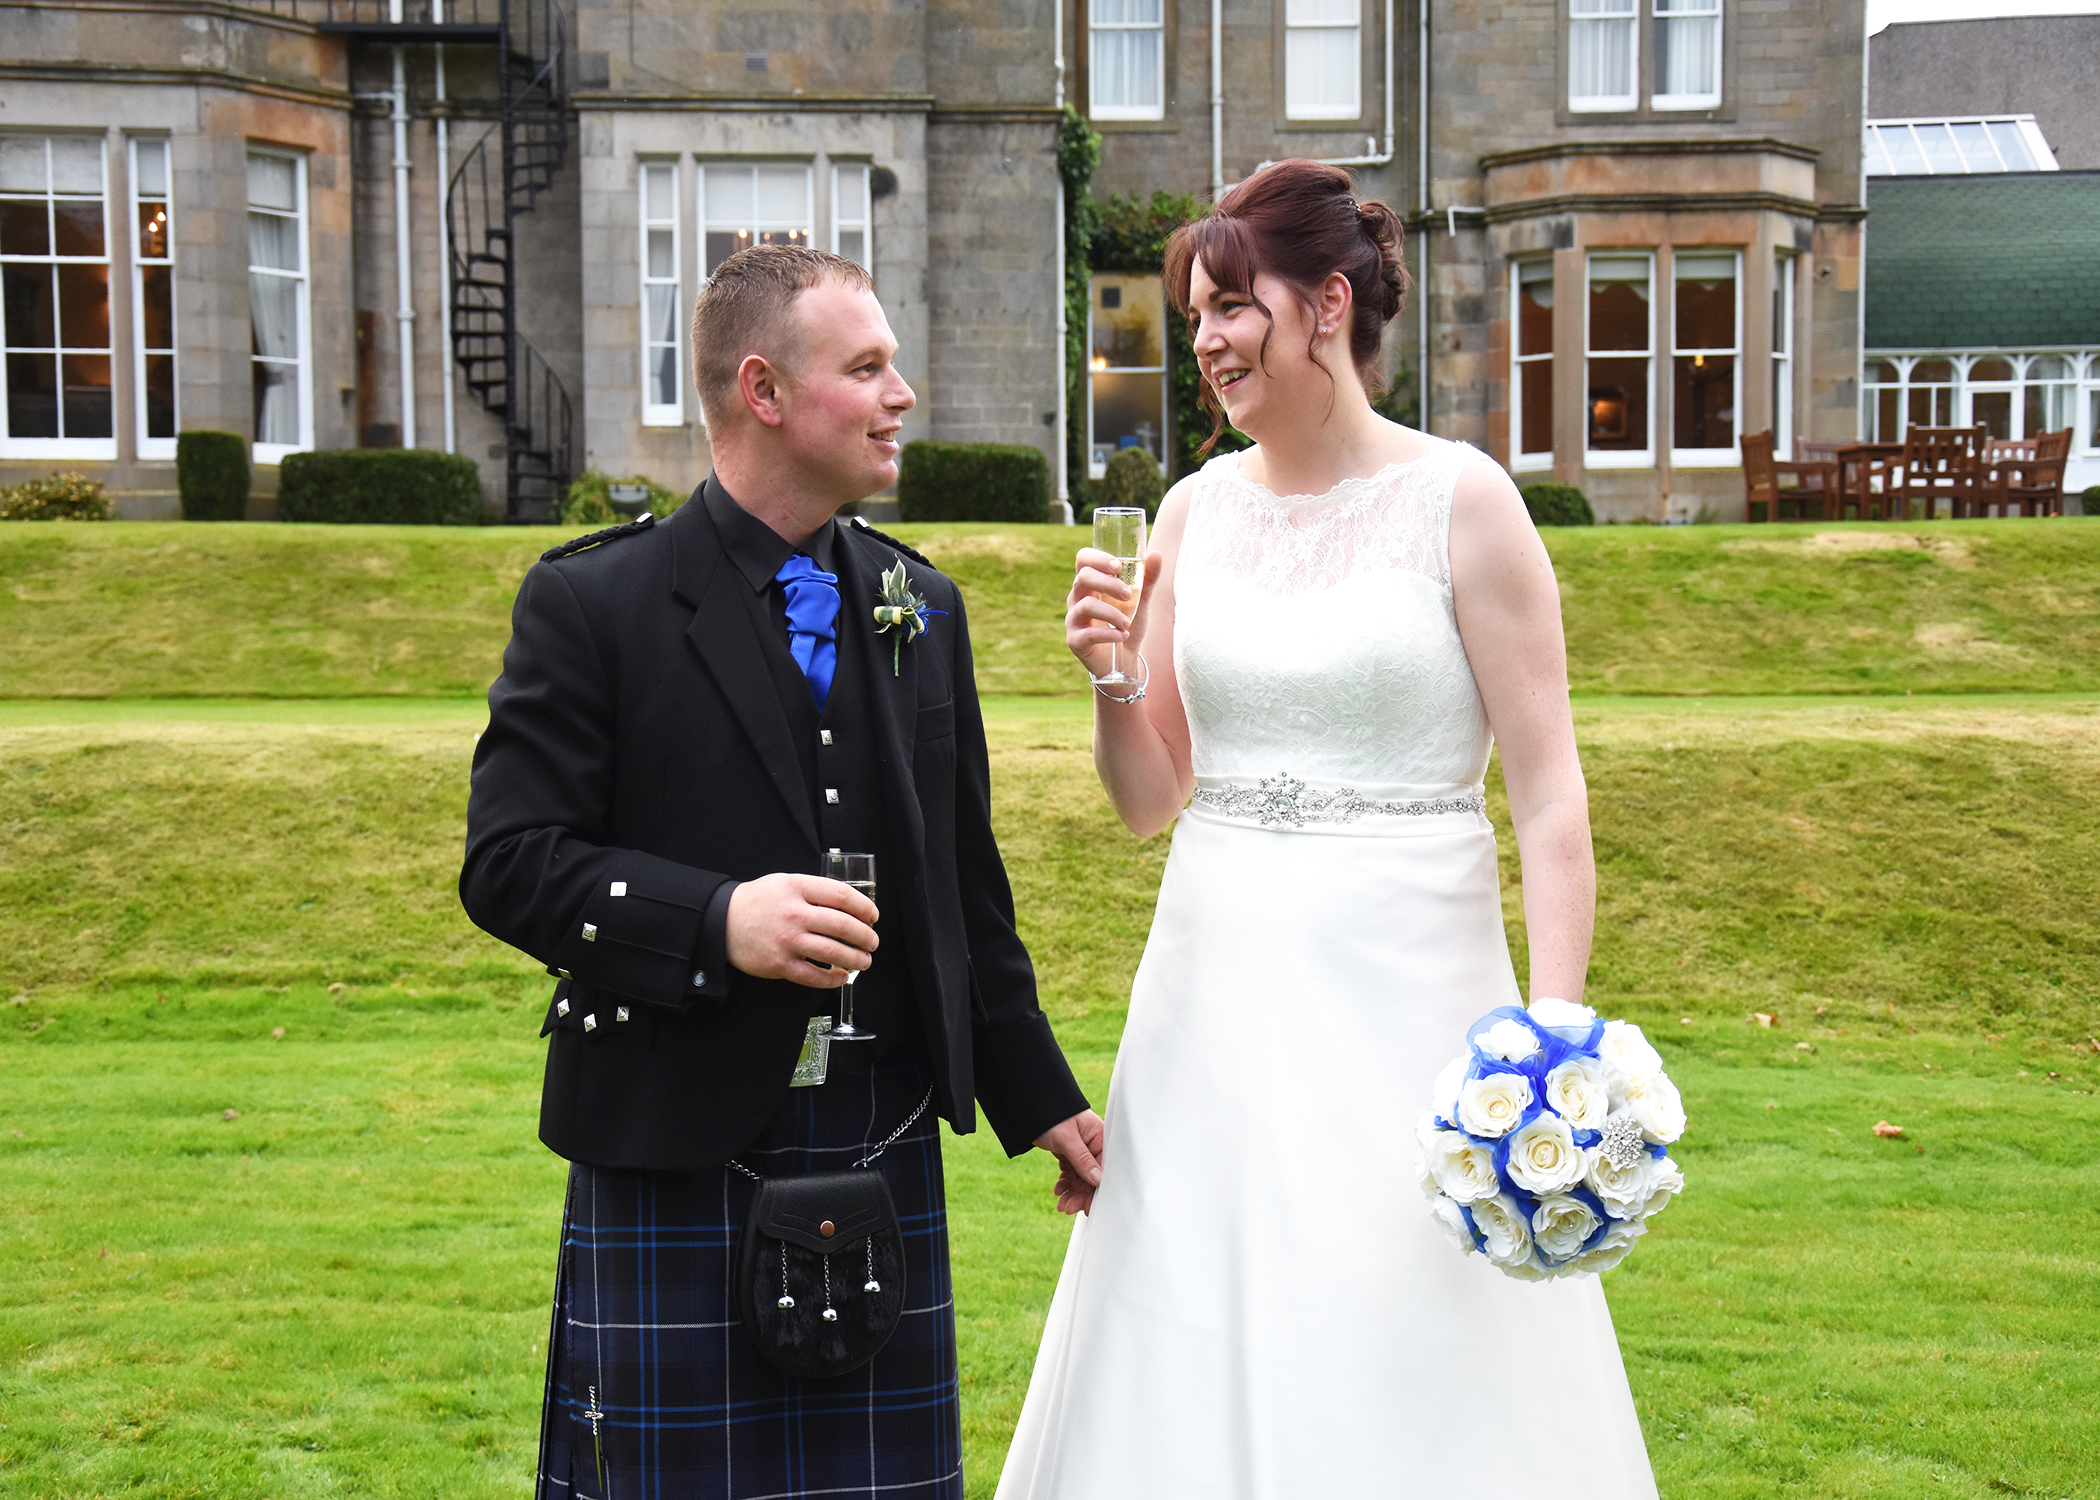 Leanne and Stuart McSherry from Dumfries (Darren Wyllie Photography)